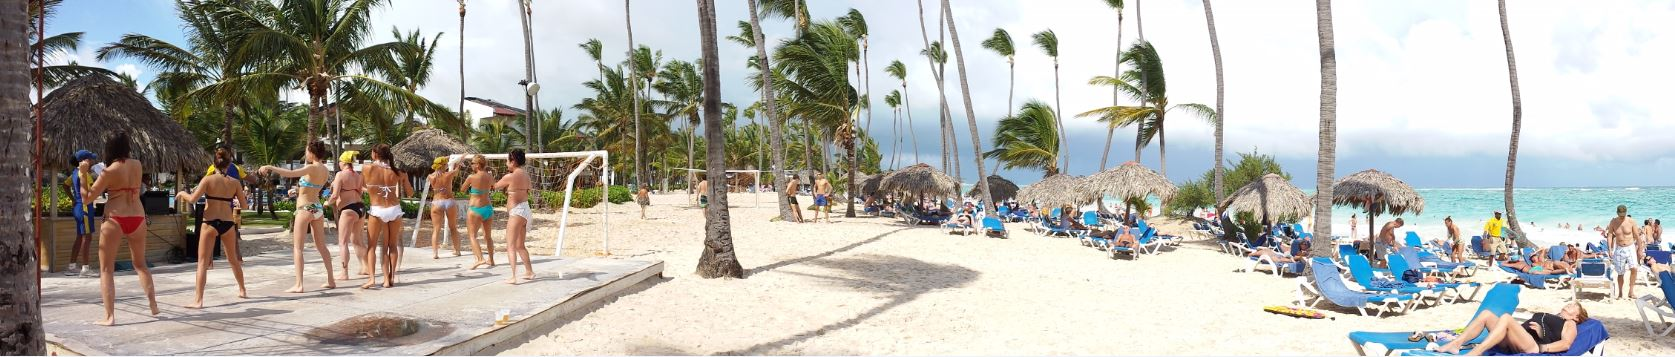 punta cana jewish singles Punta cana villas and vacation rentals displaying 40 hand picked villas in your search for punta cana  luxury retreats – the expert in punta cana luxury vacations.